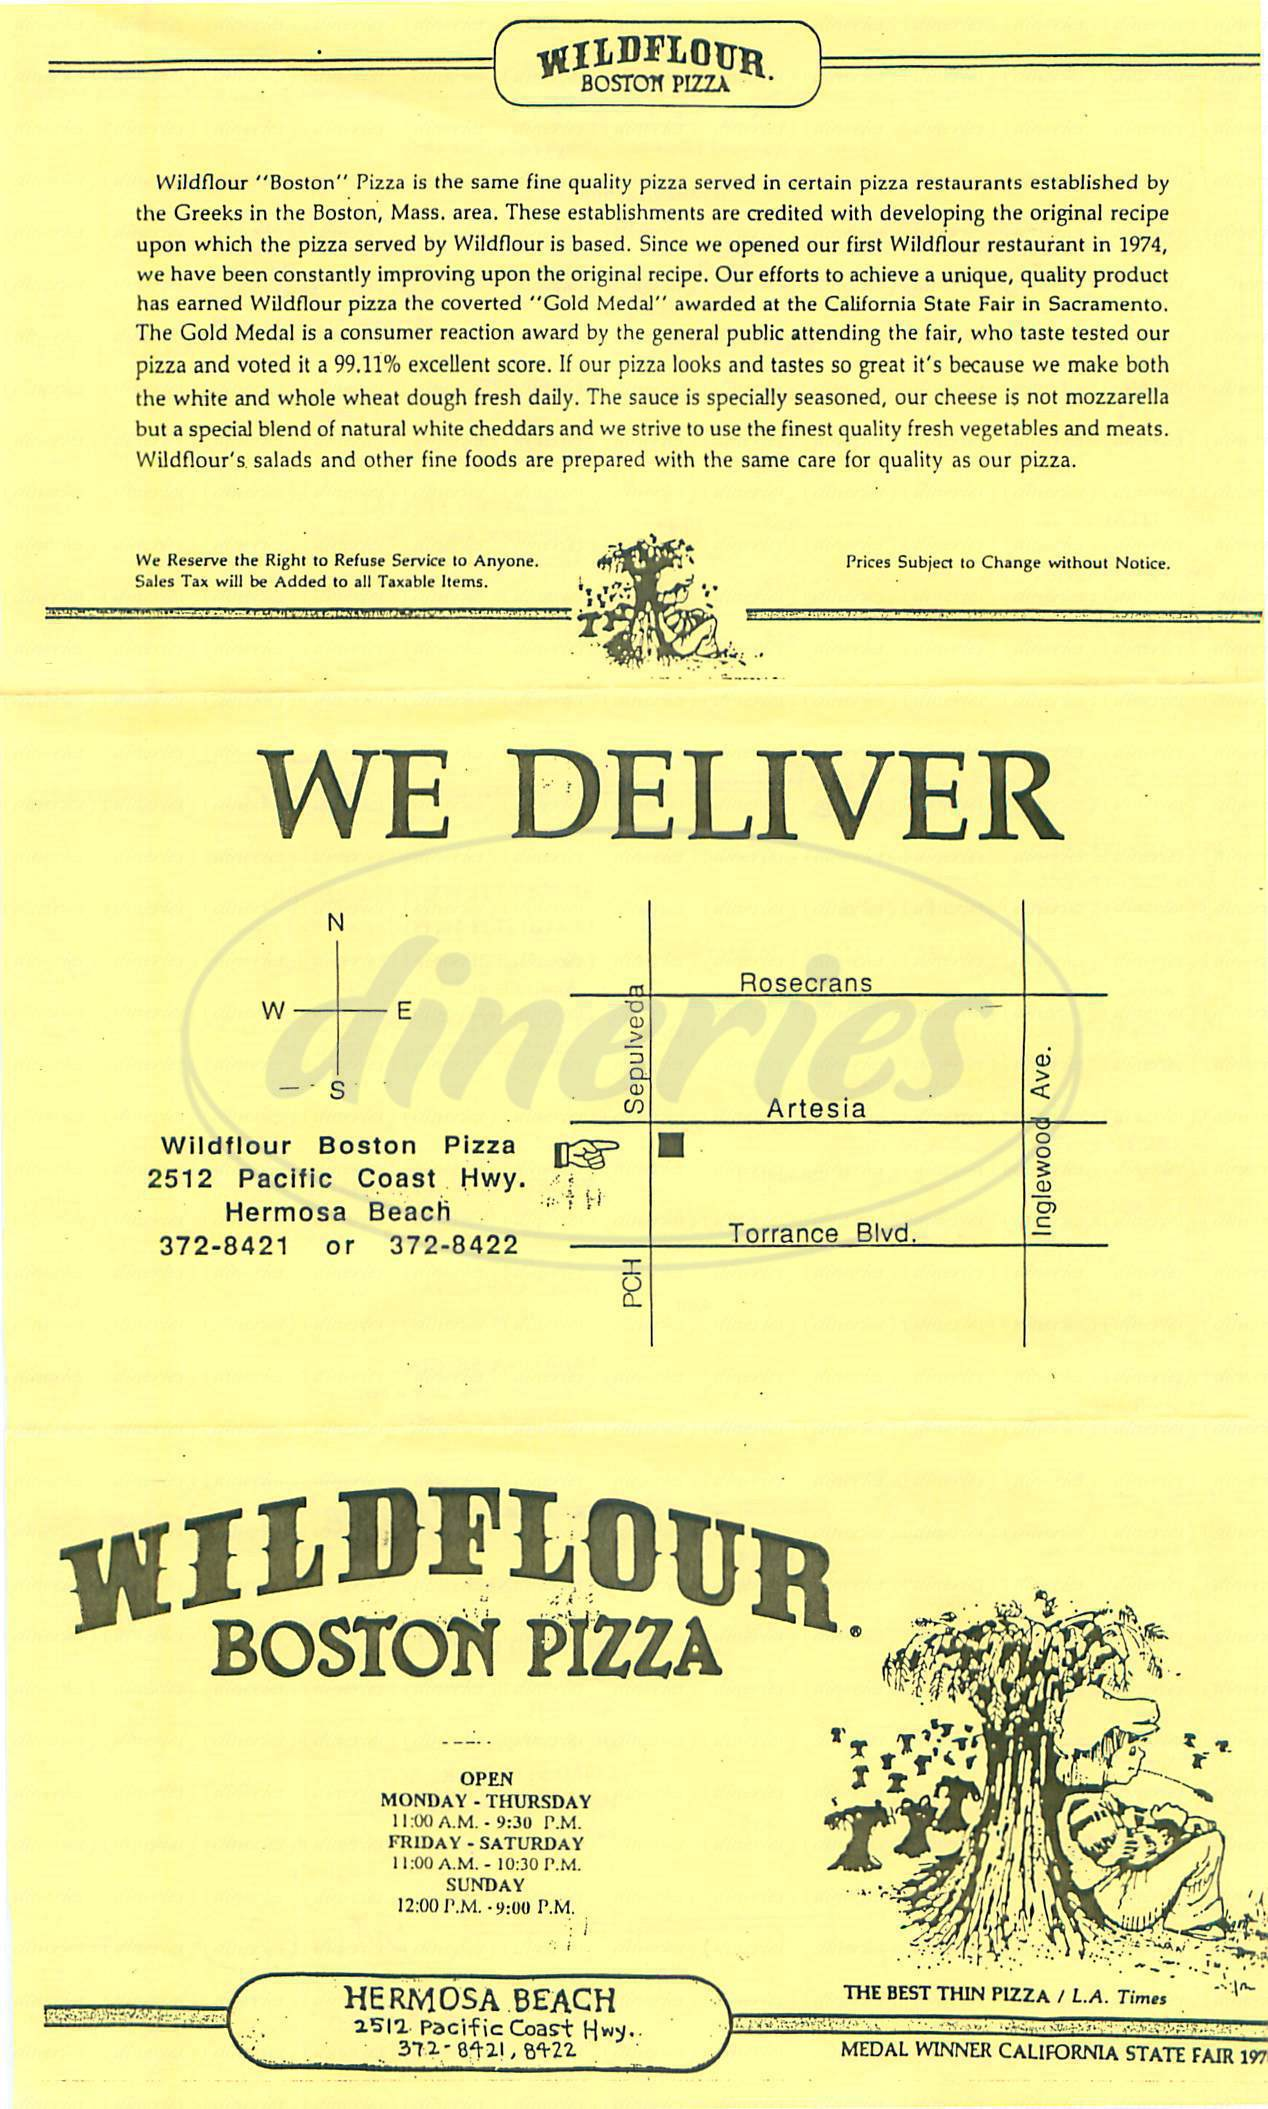 menu for Wildflour Boston Pizza